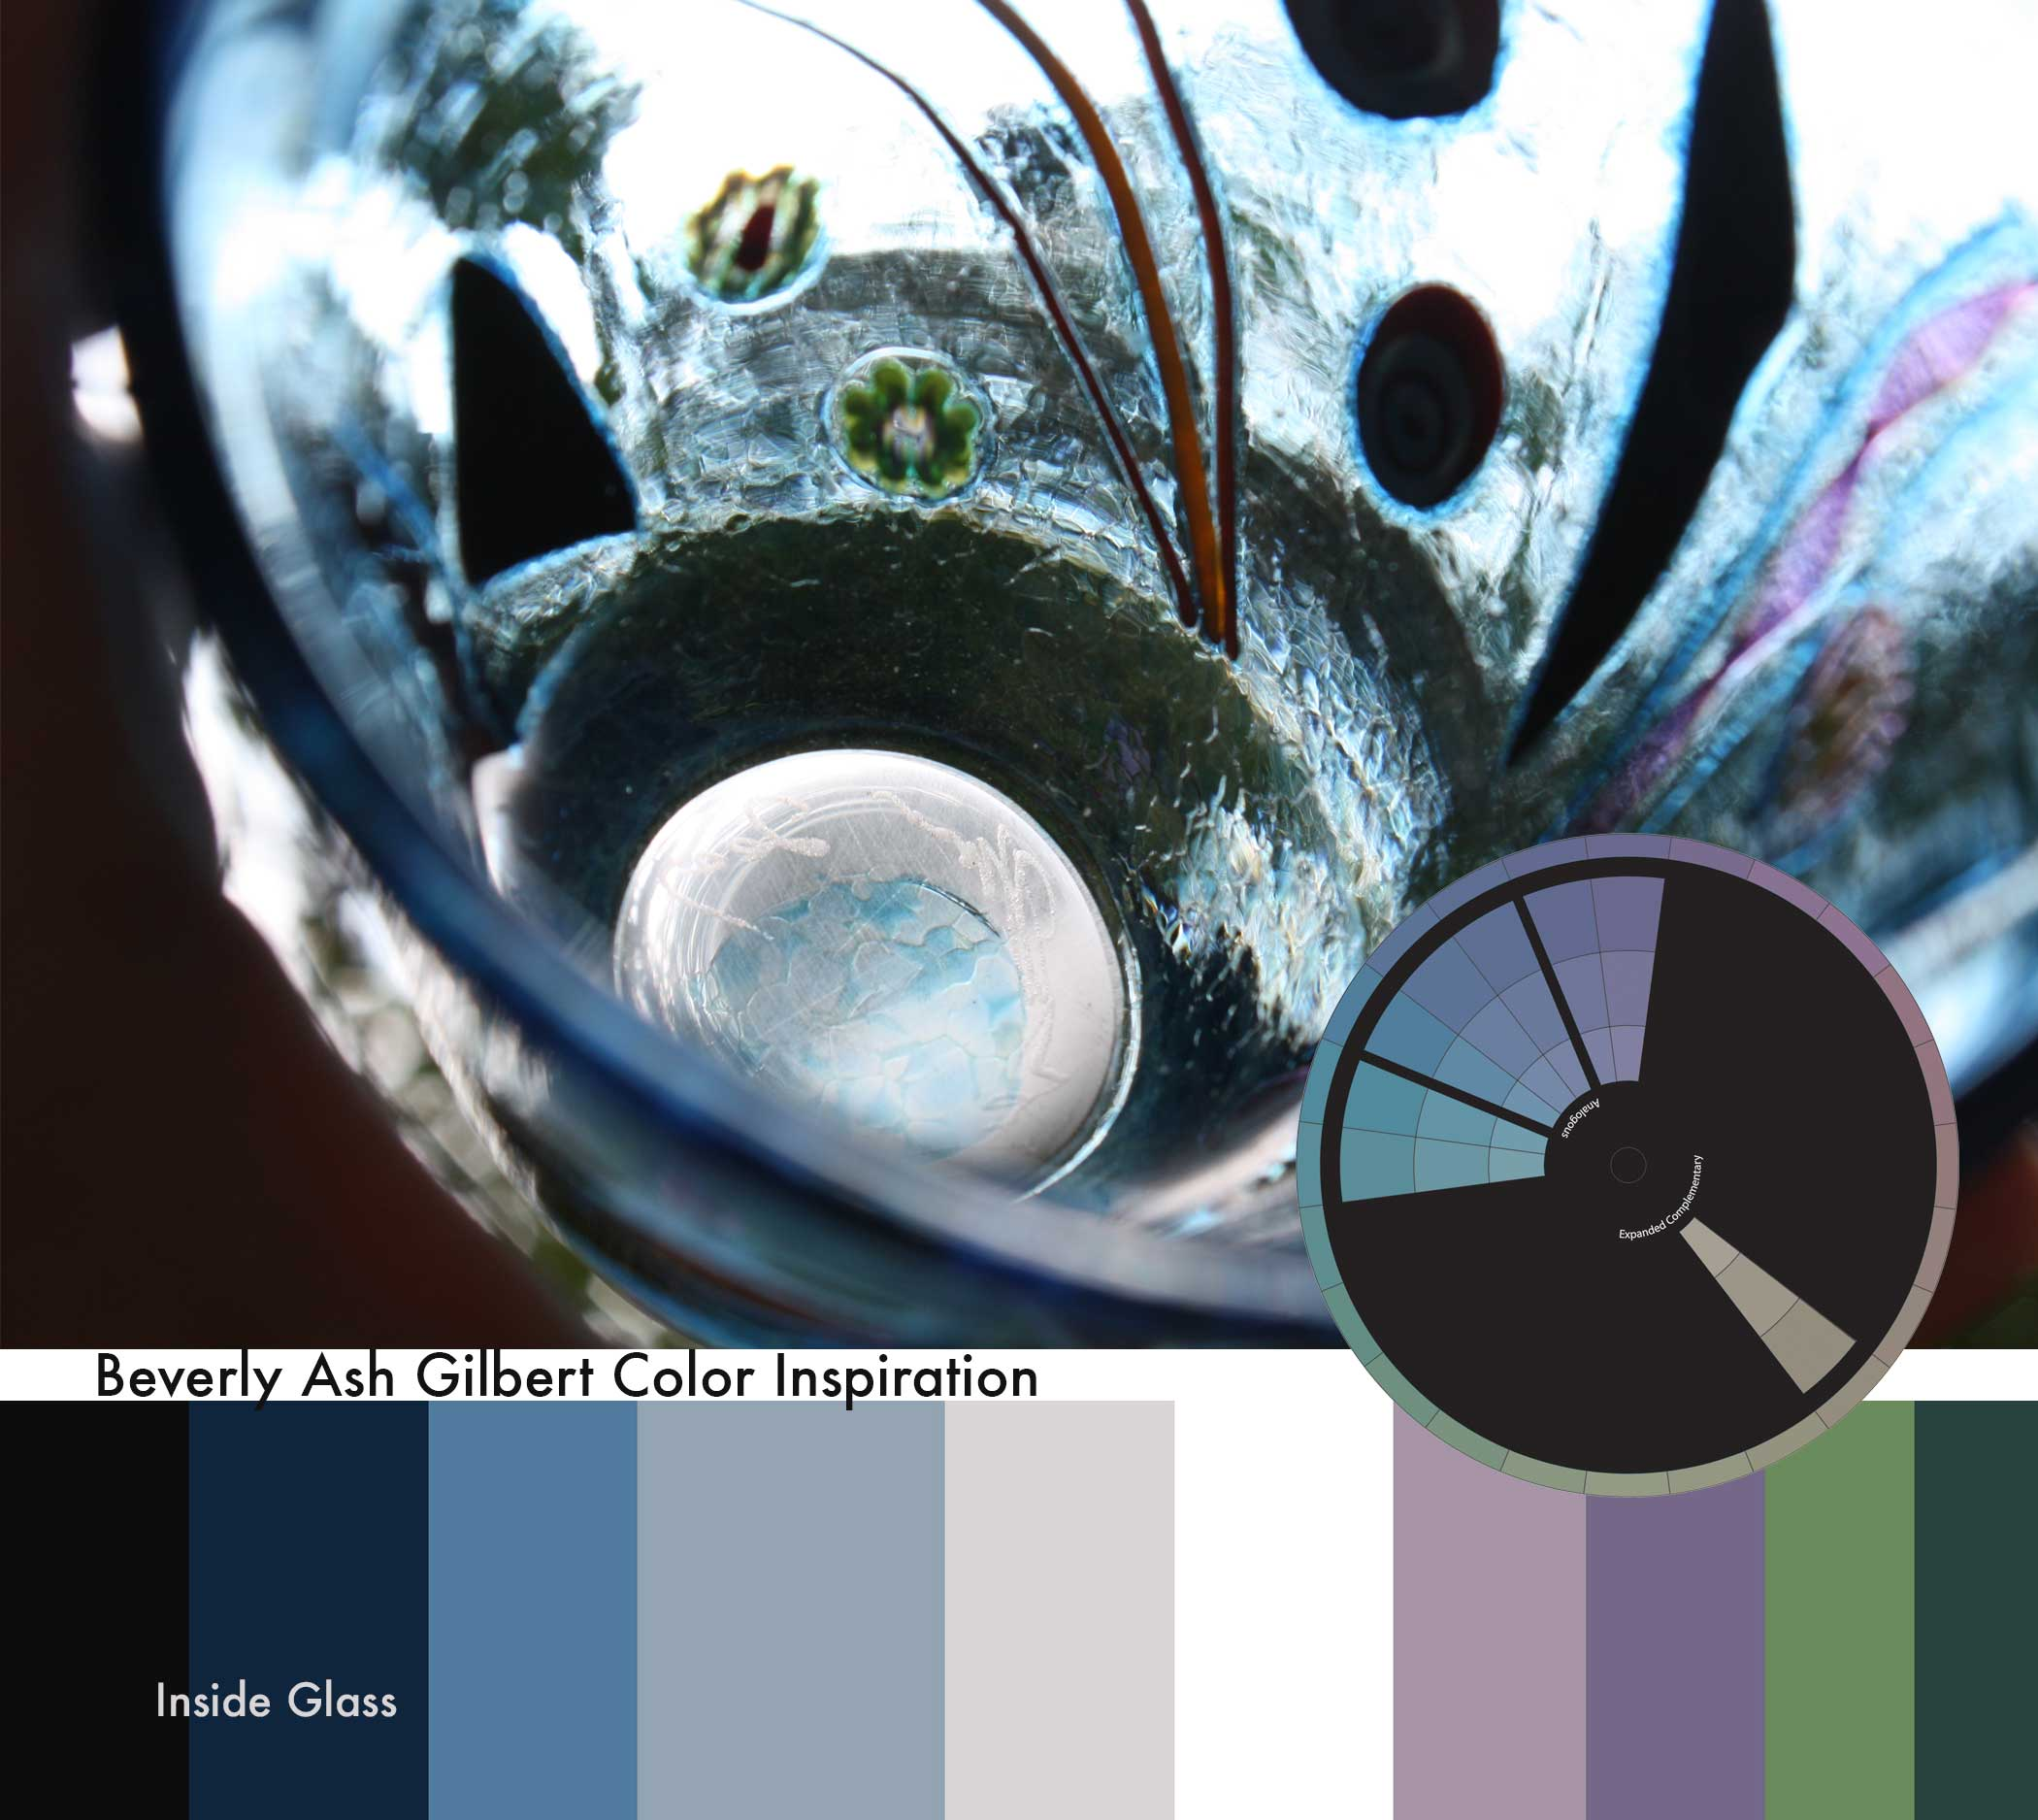 ColorInspiration_InsideGlass_small.jpg